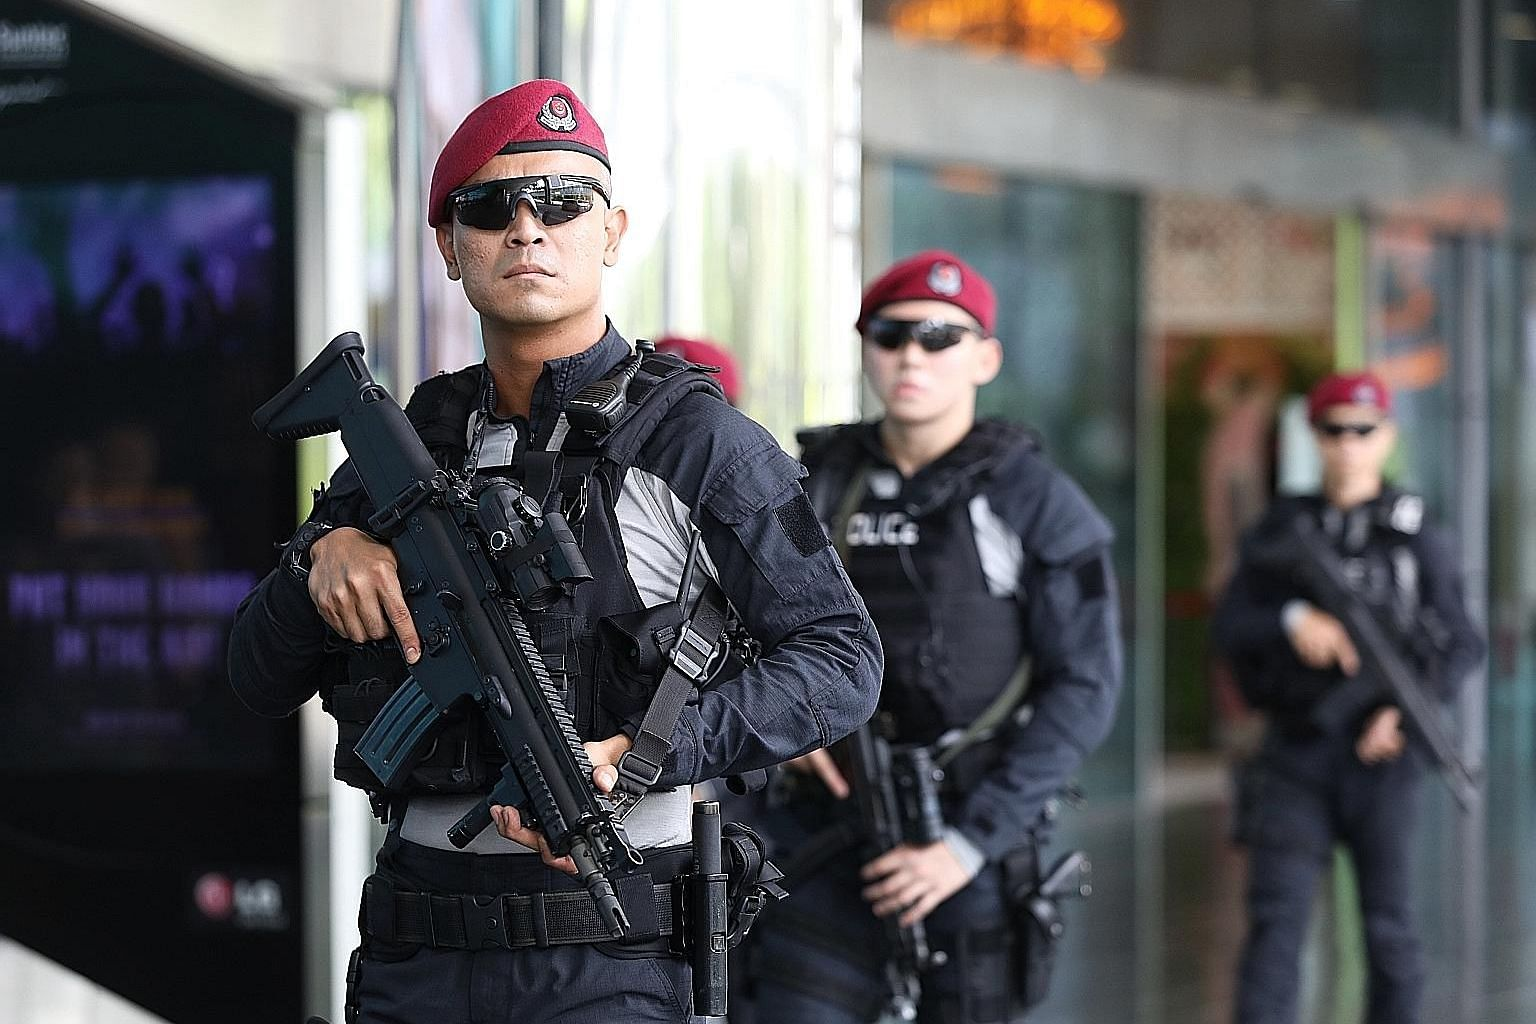 Officers from the Special Operations Command (above) were seen yesterday patrolling around Suntec Singapore Convention and Exhibition Centre where the 33rd Asean Summit is to take place next week. Mobile surveillance cameras (below) were also seen ne